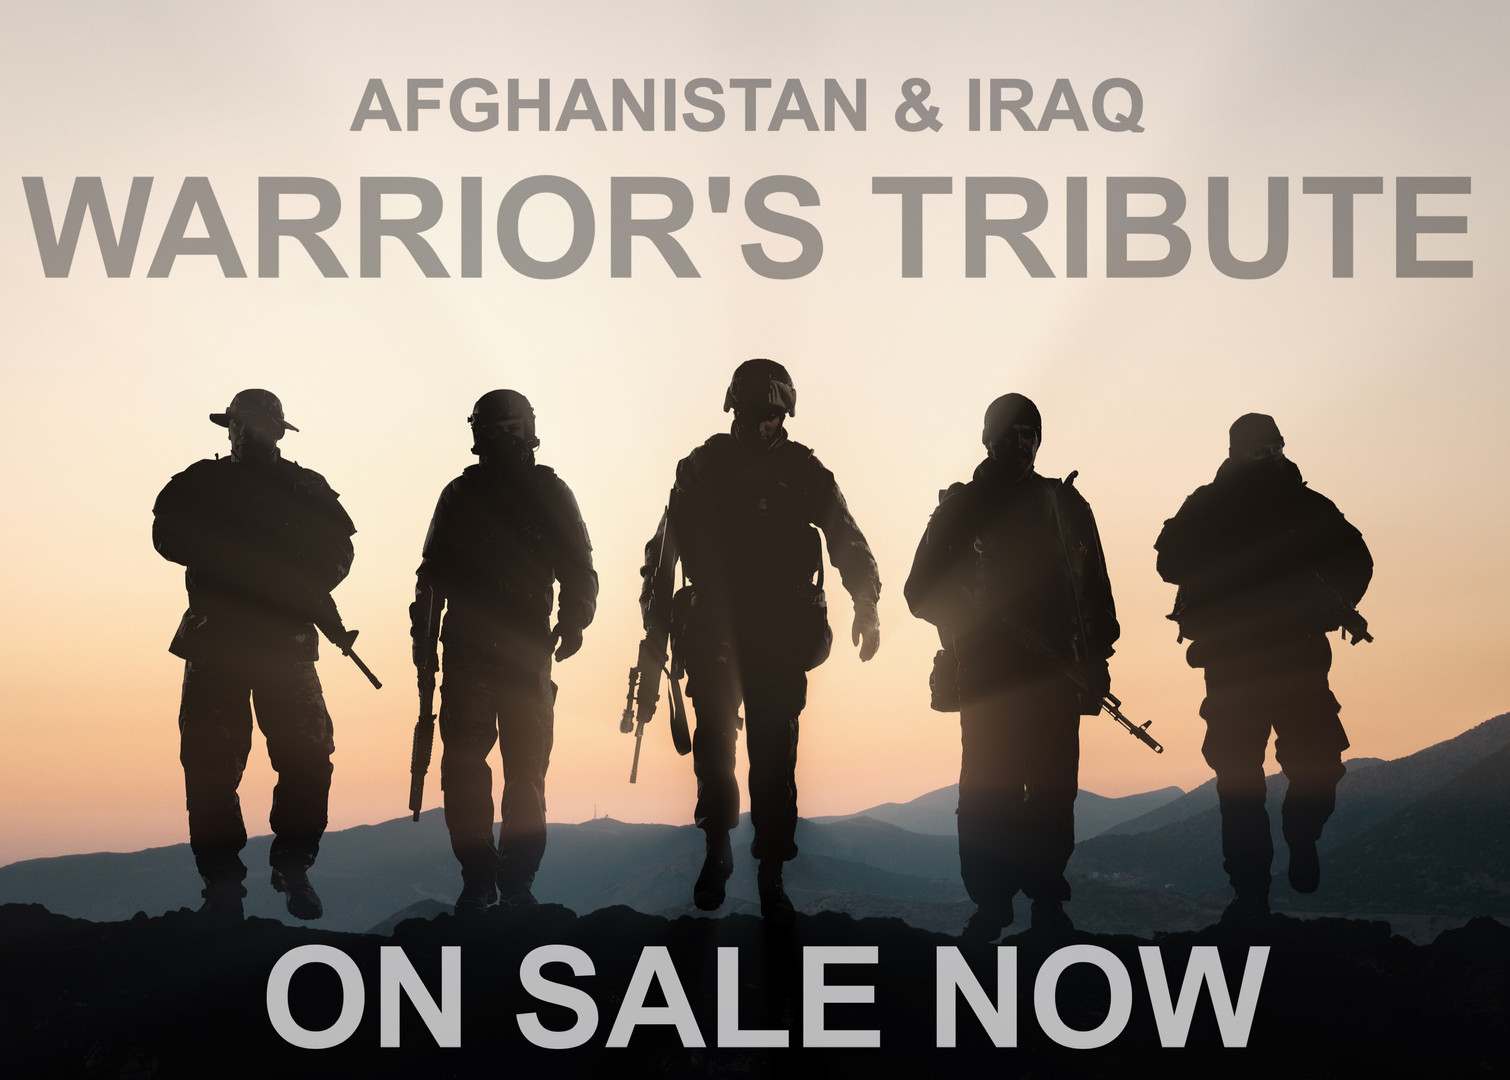 Afghan & Iraq Warrior's Tribute on sale NOW